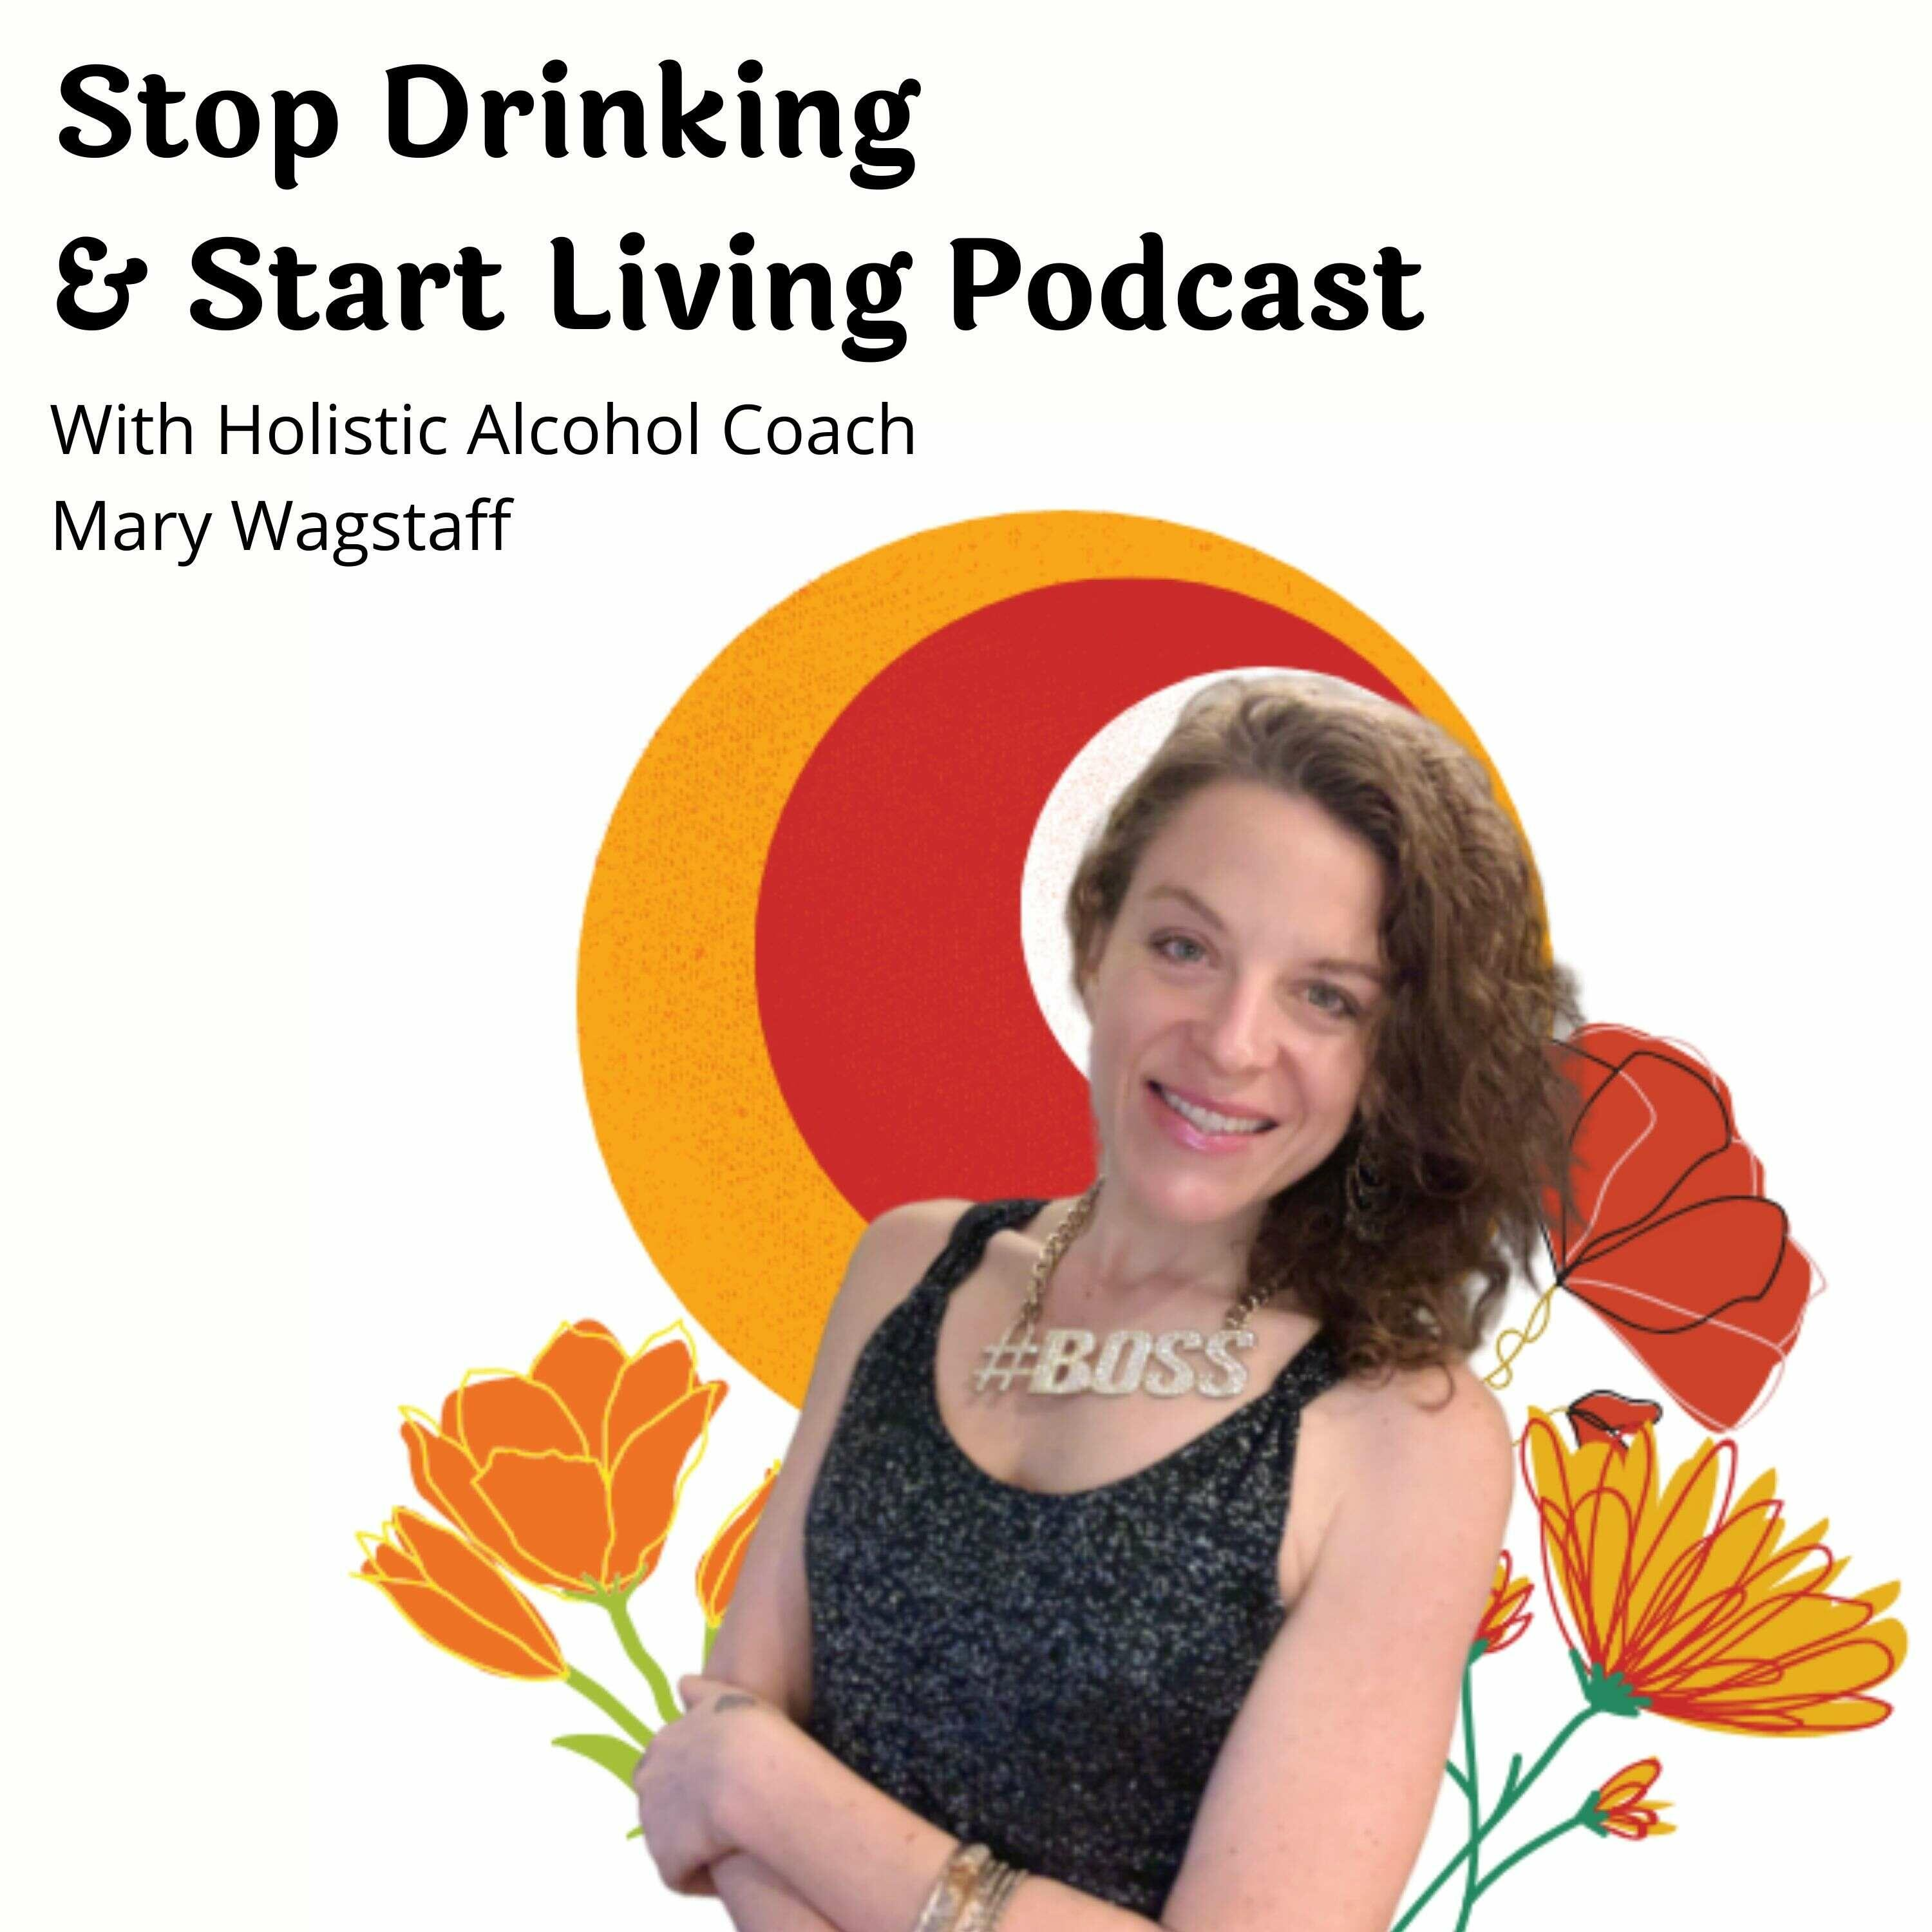 Stop Drinking and Start Living